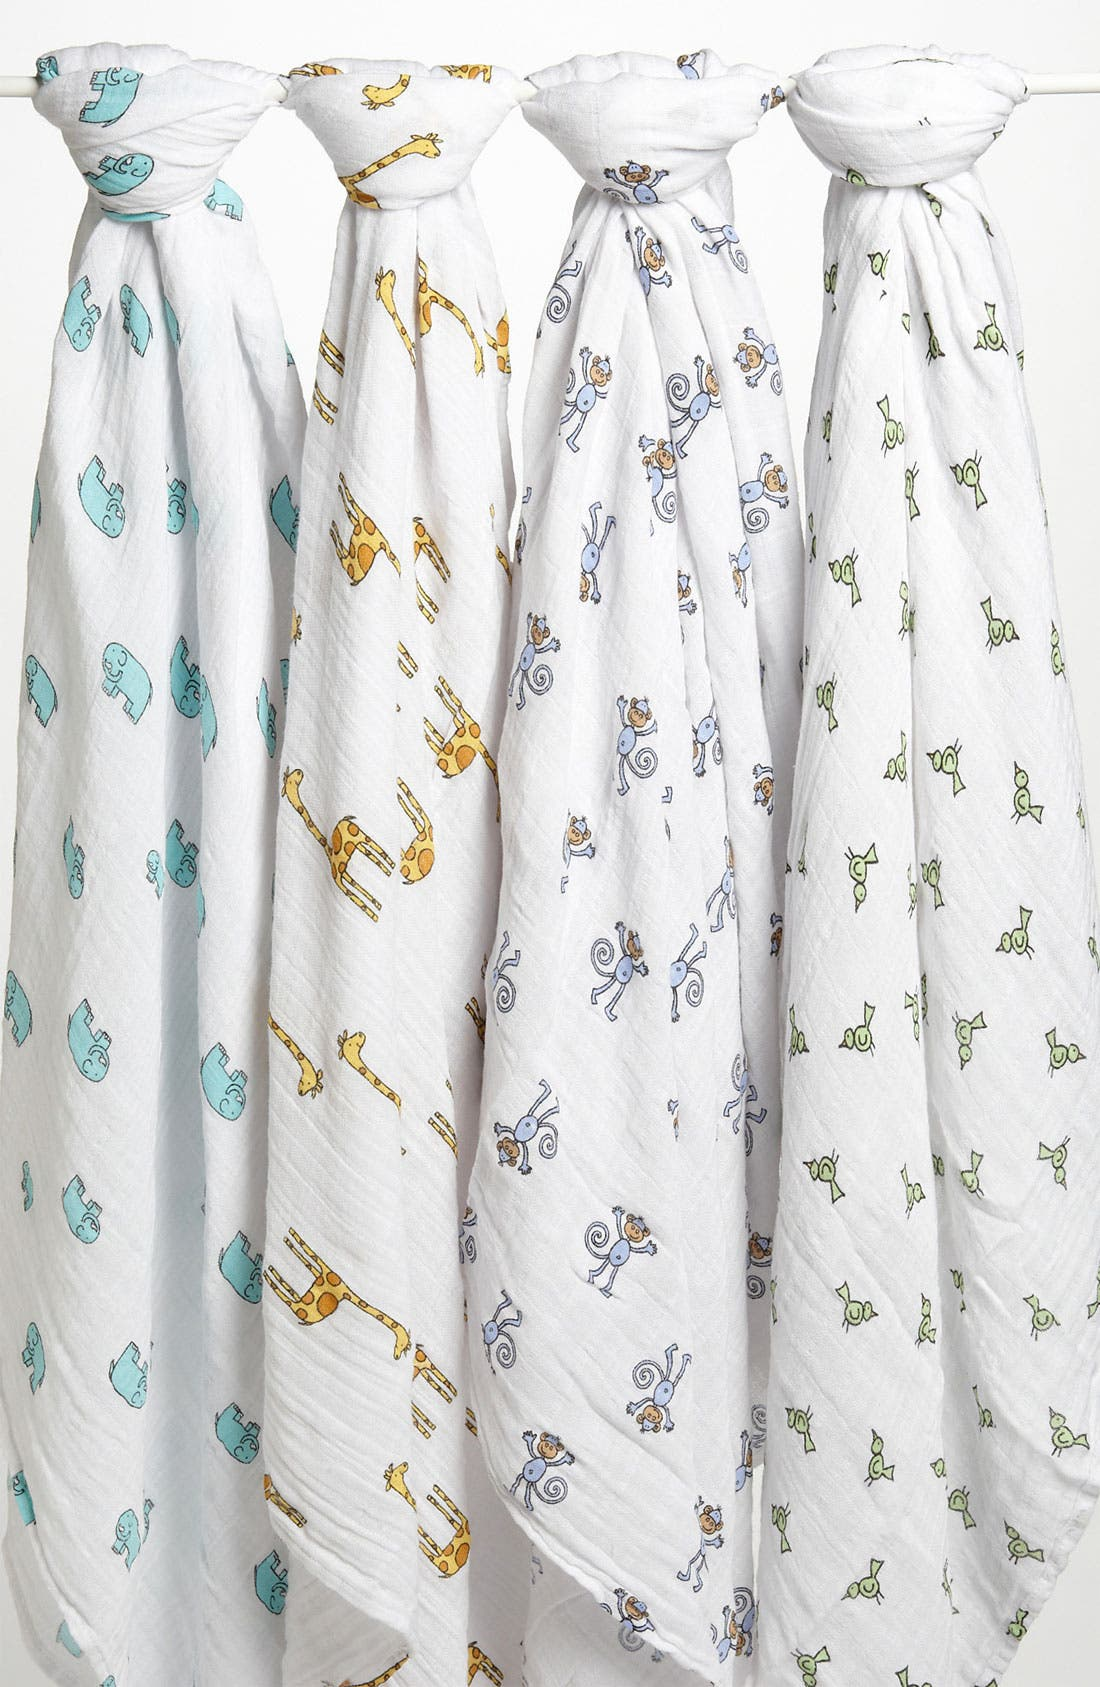 ADEN + ANAIS Set of 4 Classic Swaddling